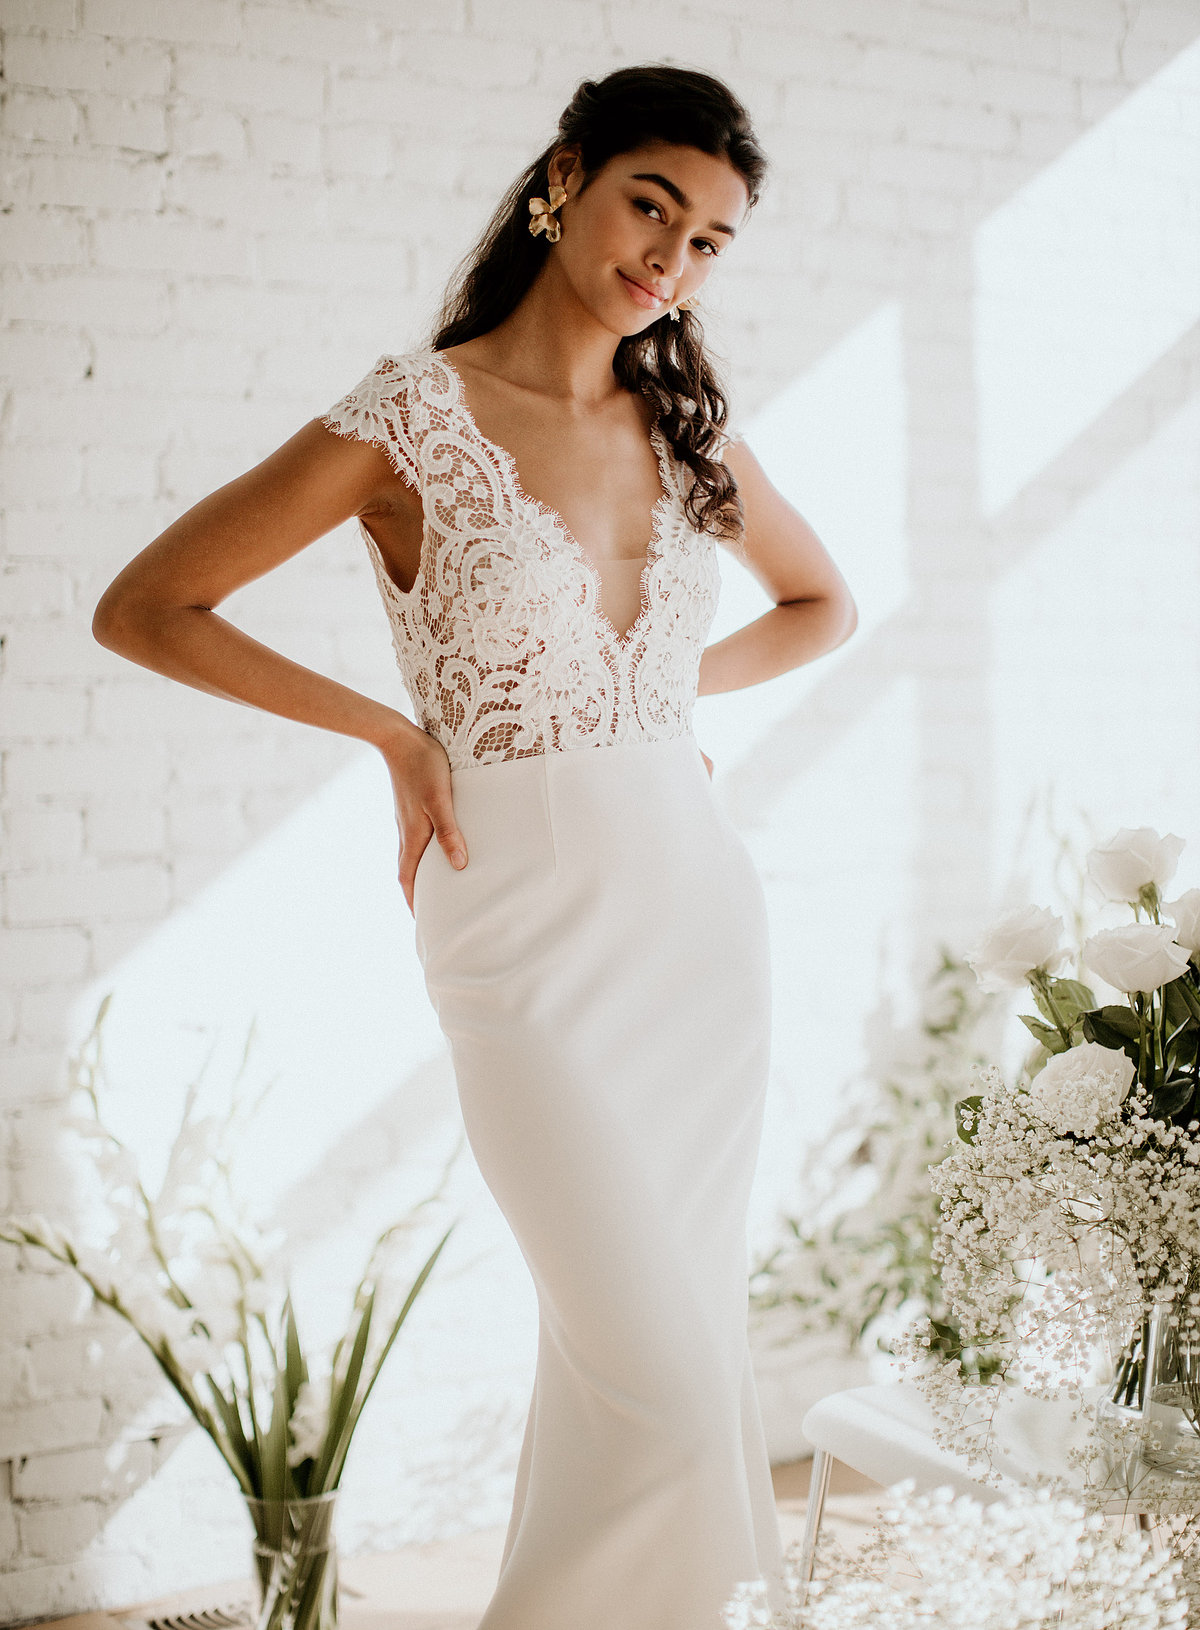 Anais Alexandra connecticut — everthine bridal boutique